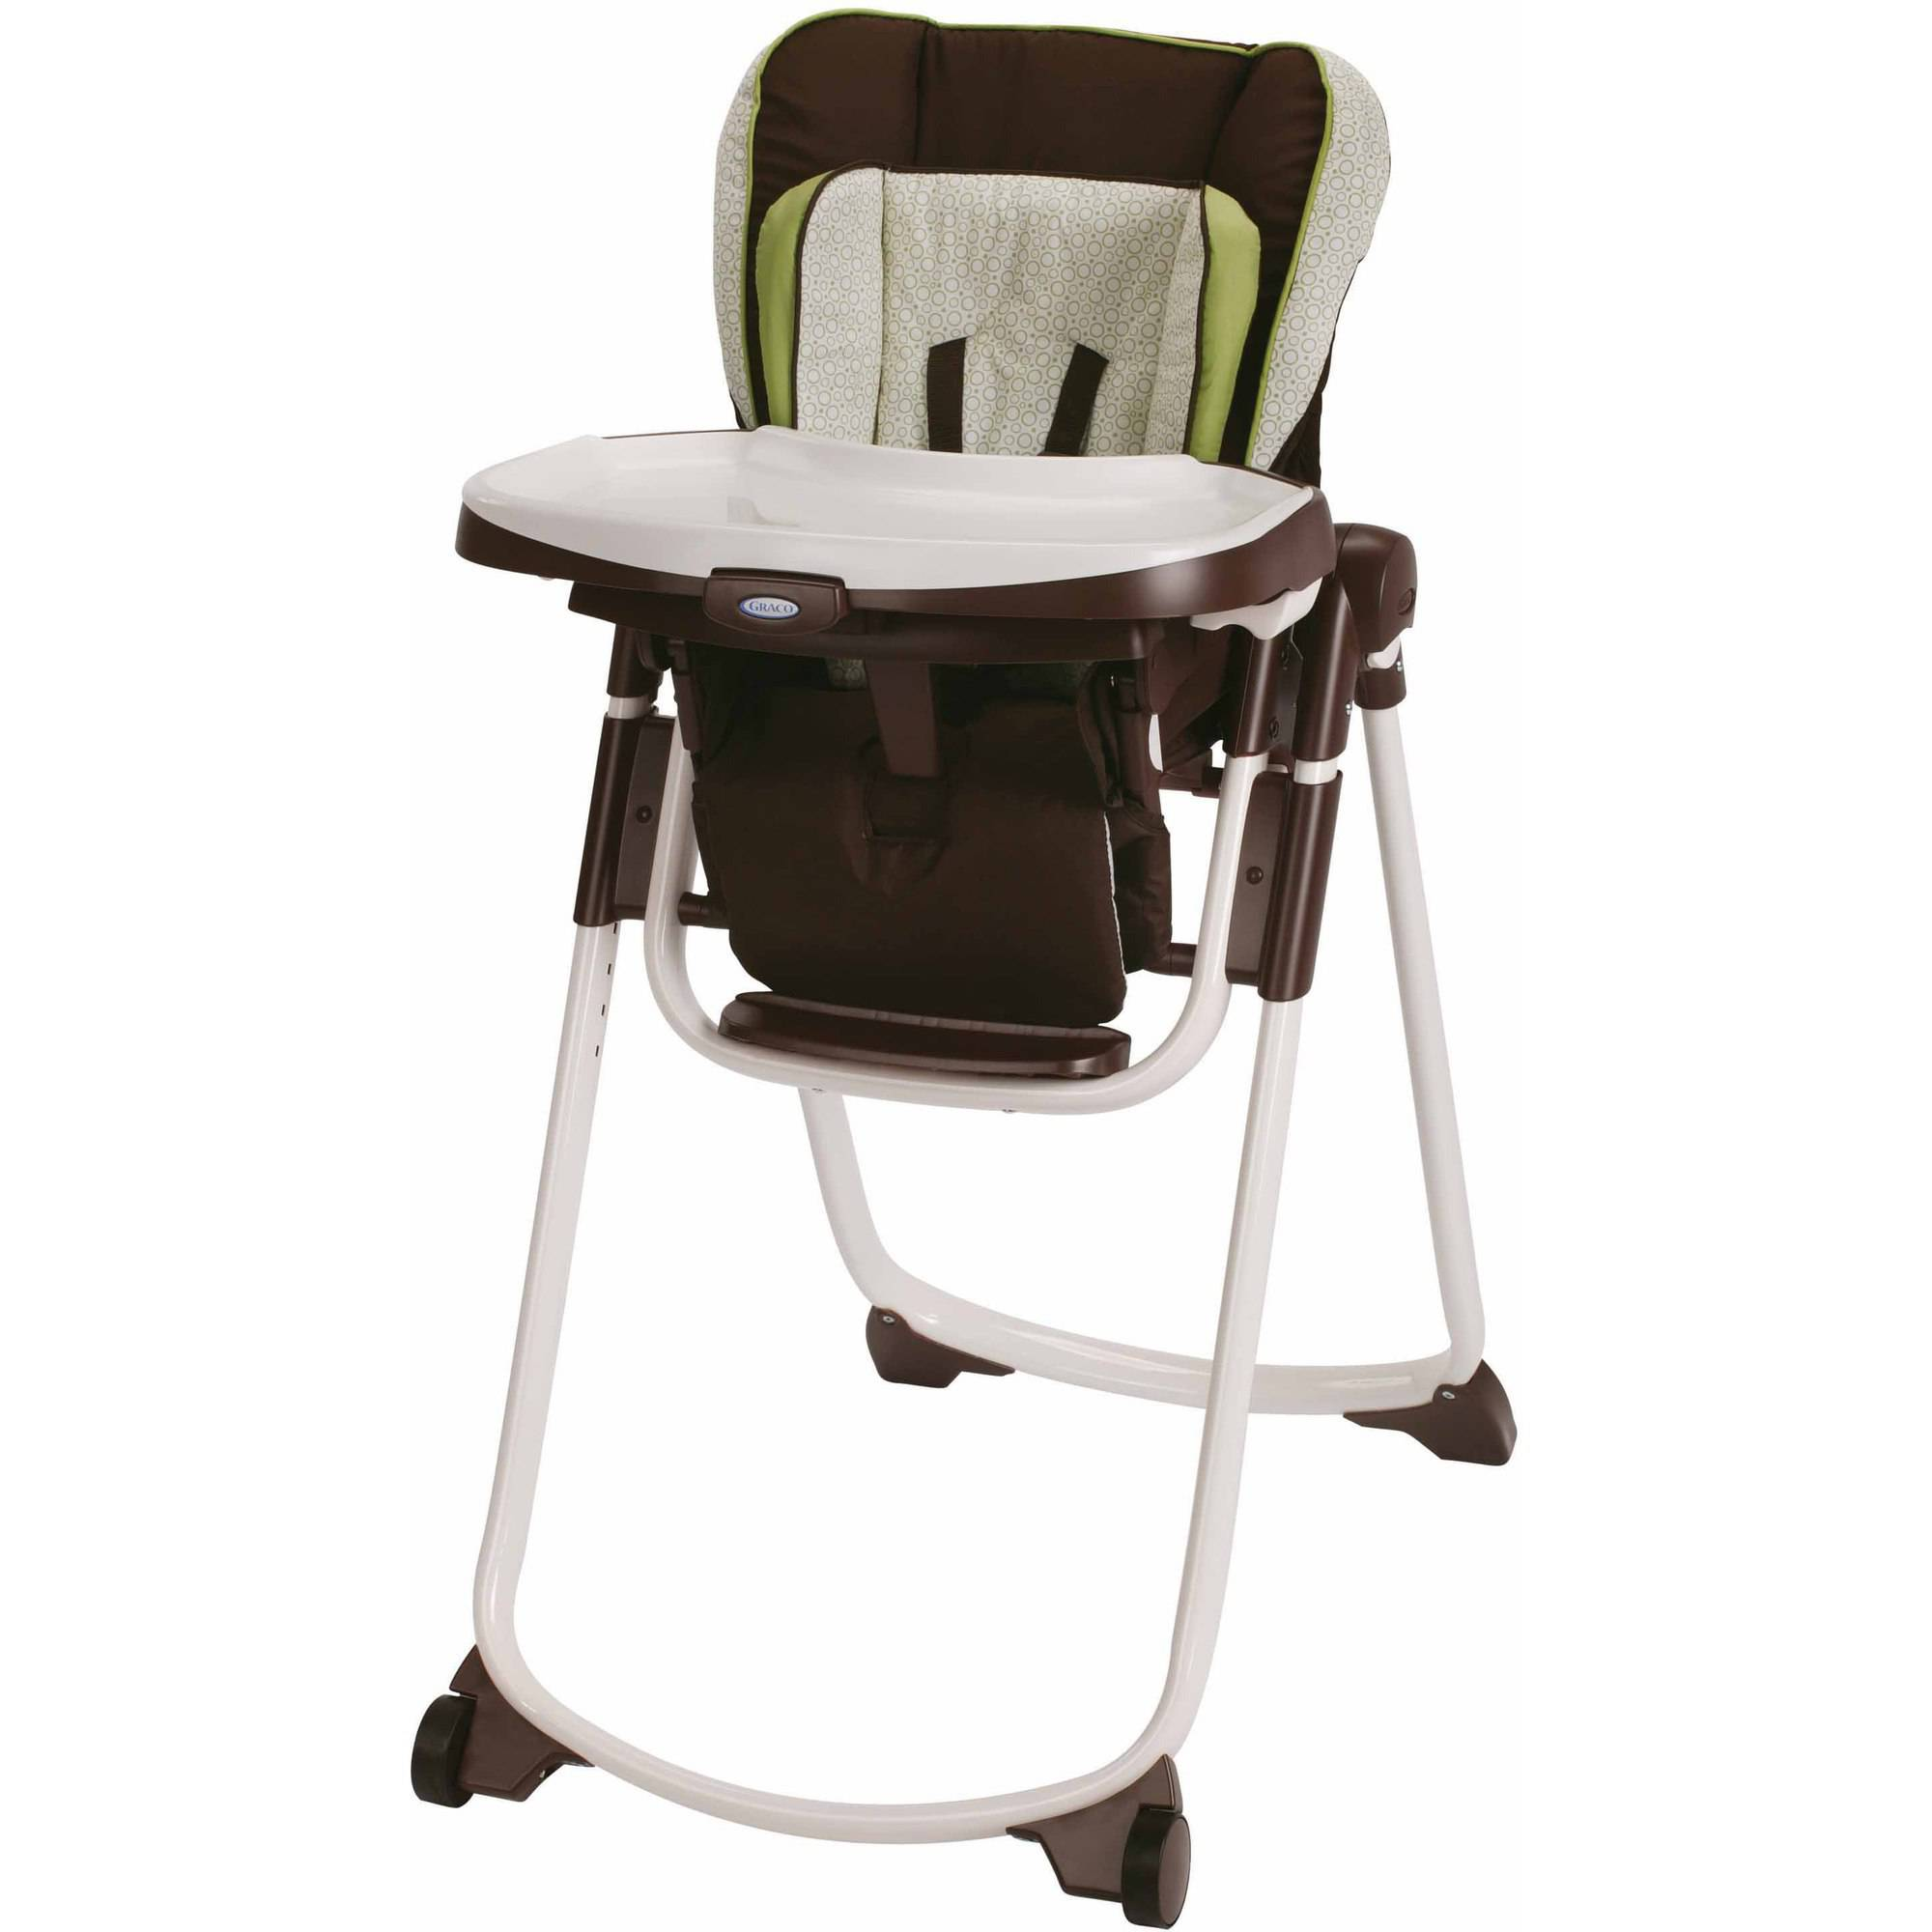 3 In 1 High Chair Elegant High Chair Convertible Rtty1 Rtty1